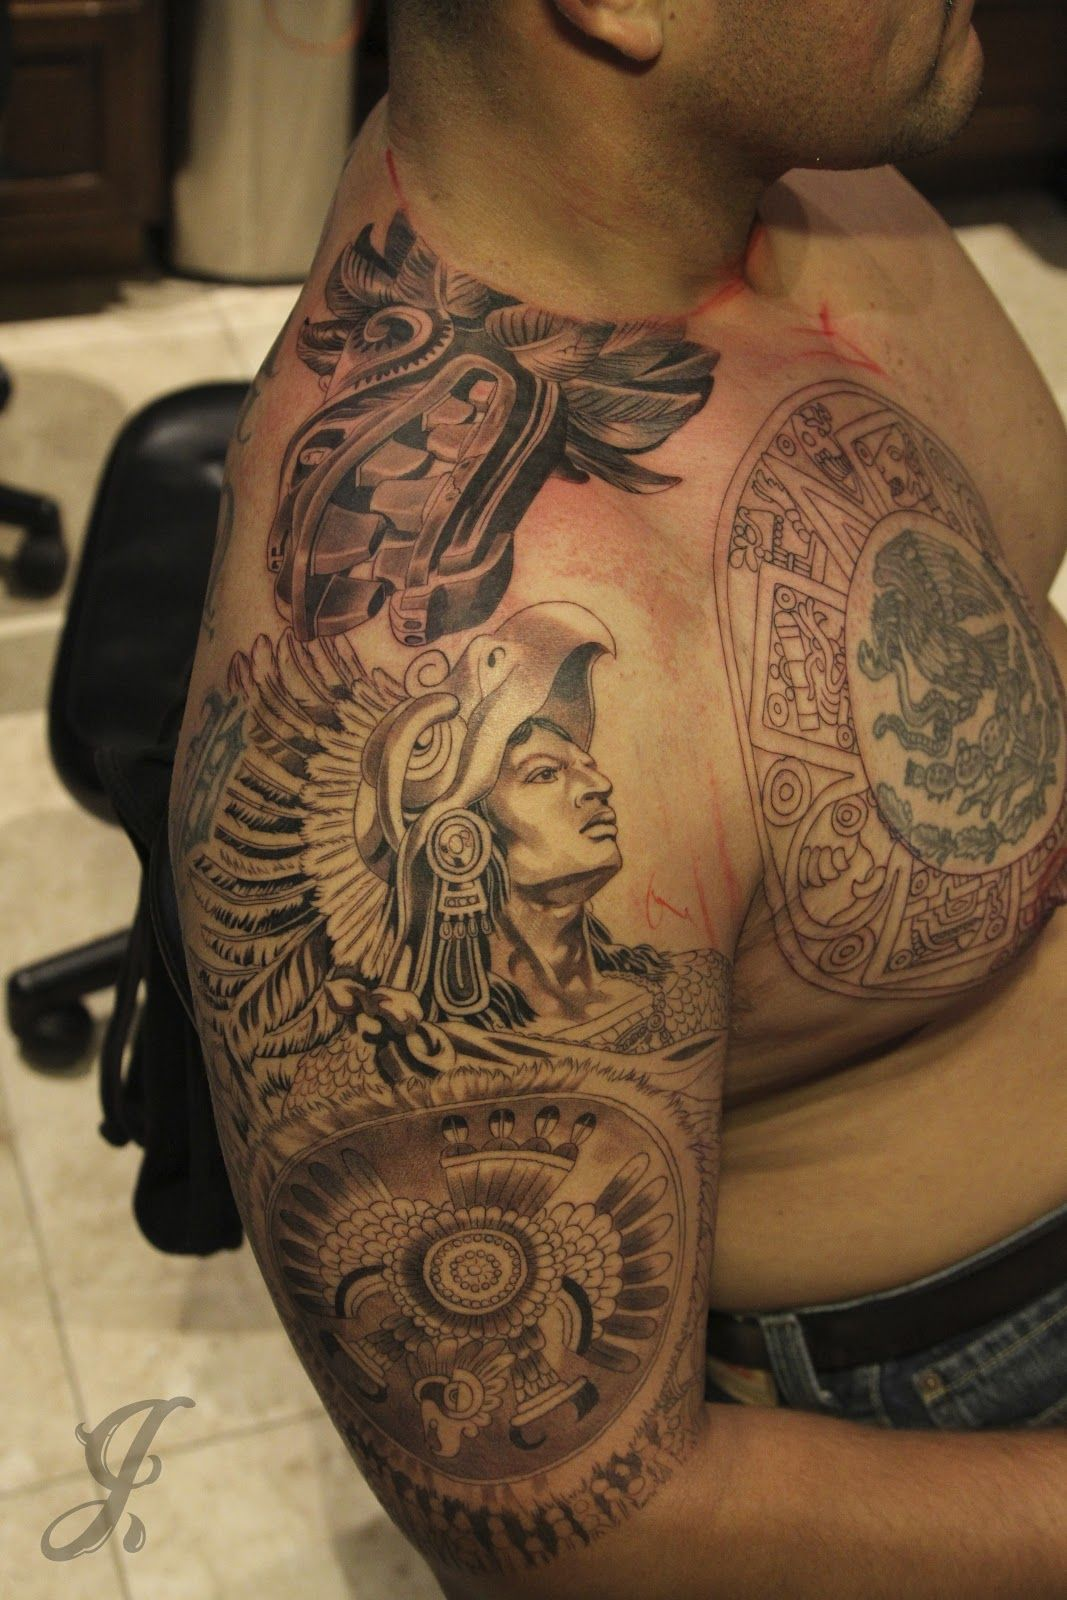 Top 25 Aztec Tattoo Designs With Meanings   Styles At Life